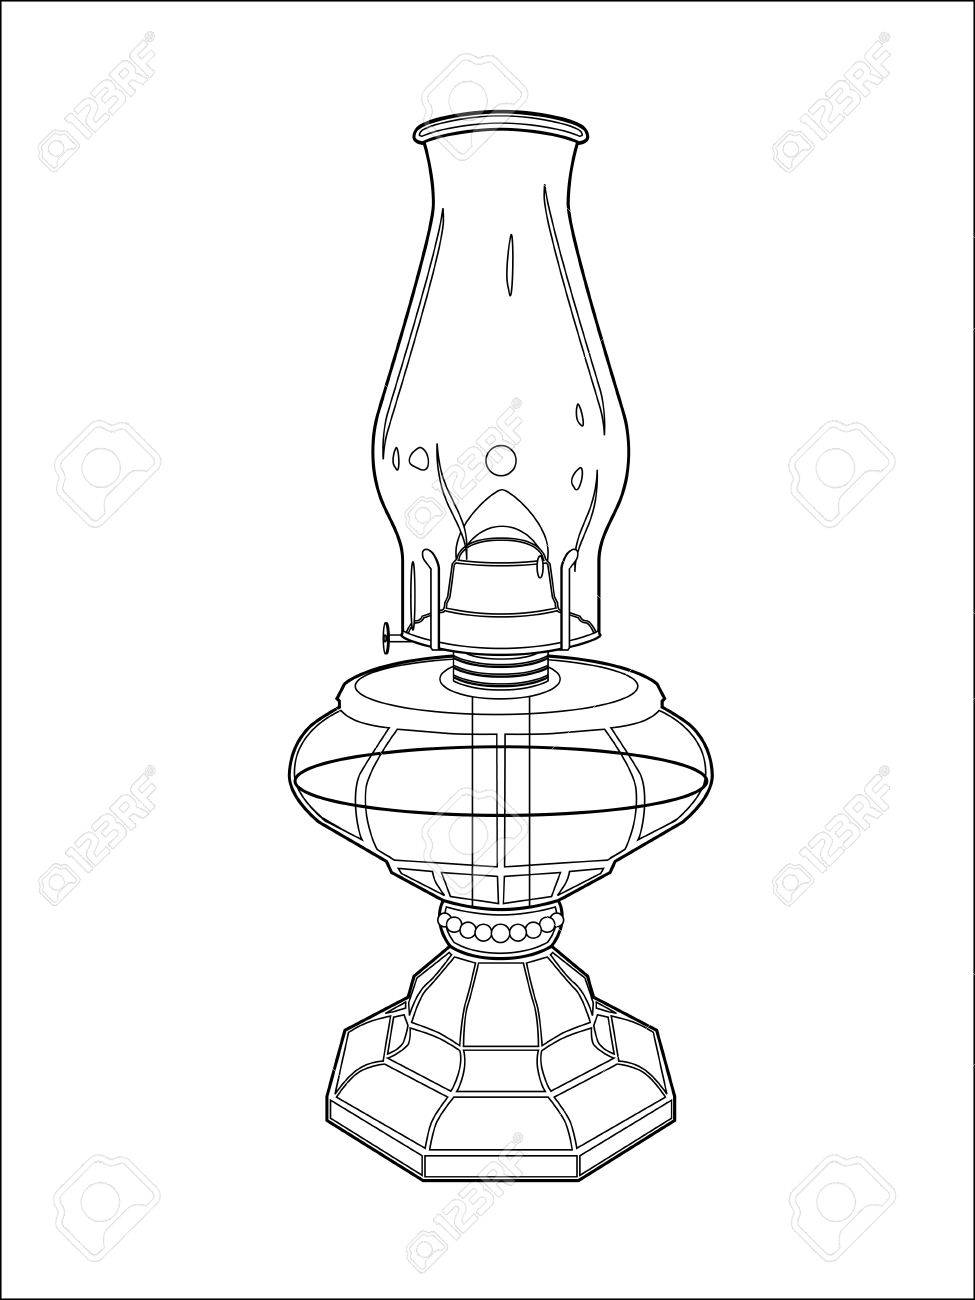 975x1300 Hurricane Lamp Line Art Royalty Free Cliparts, Vectors, And Stock